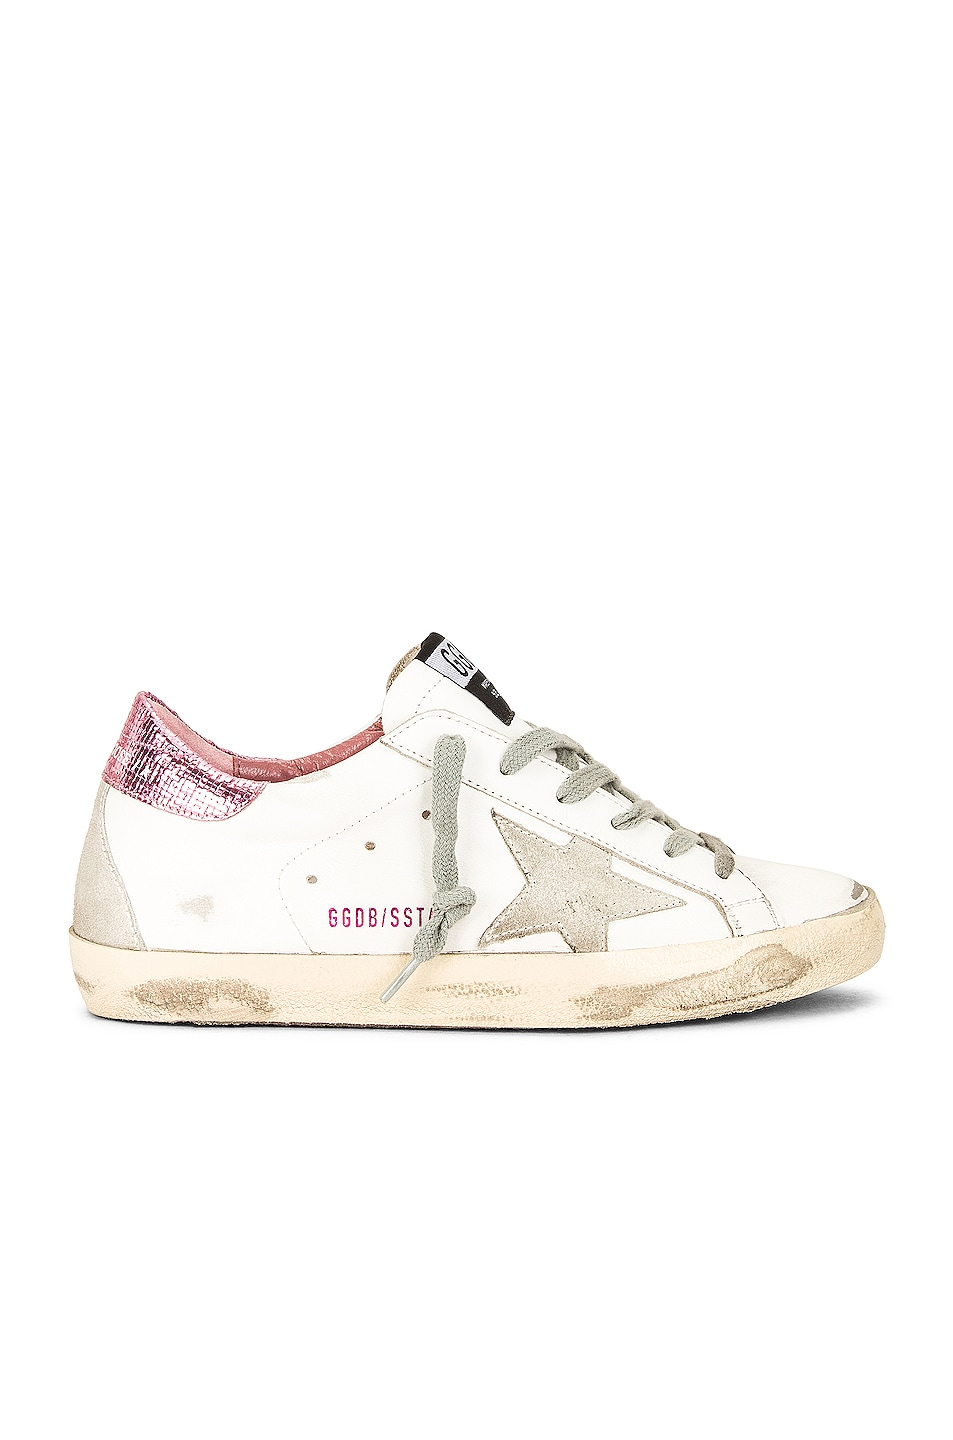 Image 1 of Golden Goose Superstar Sneaker in White, Ice & Pink